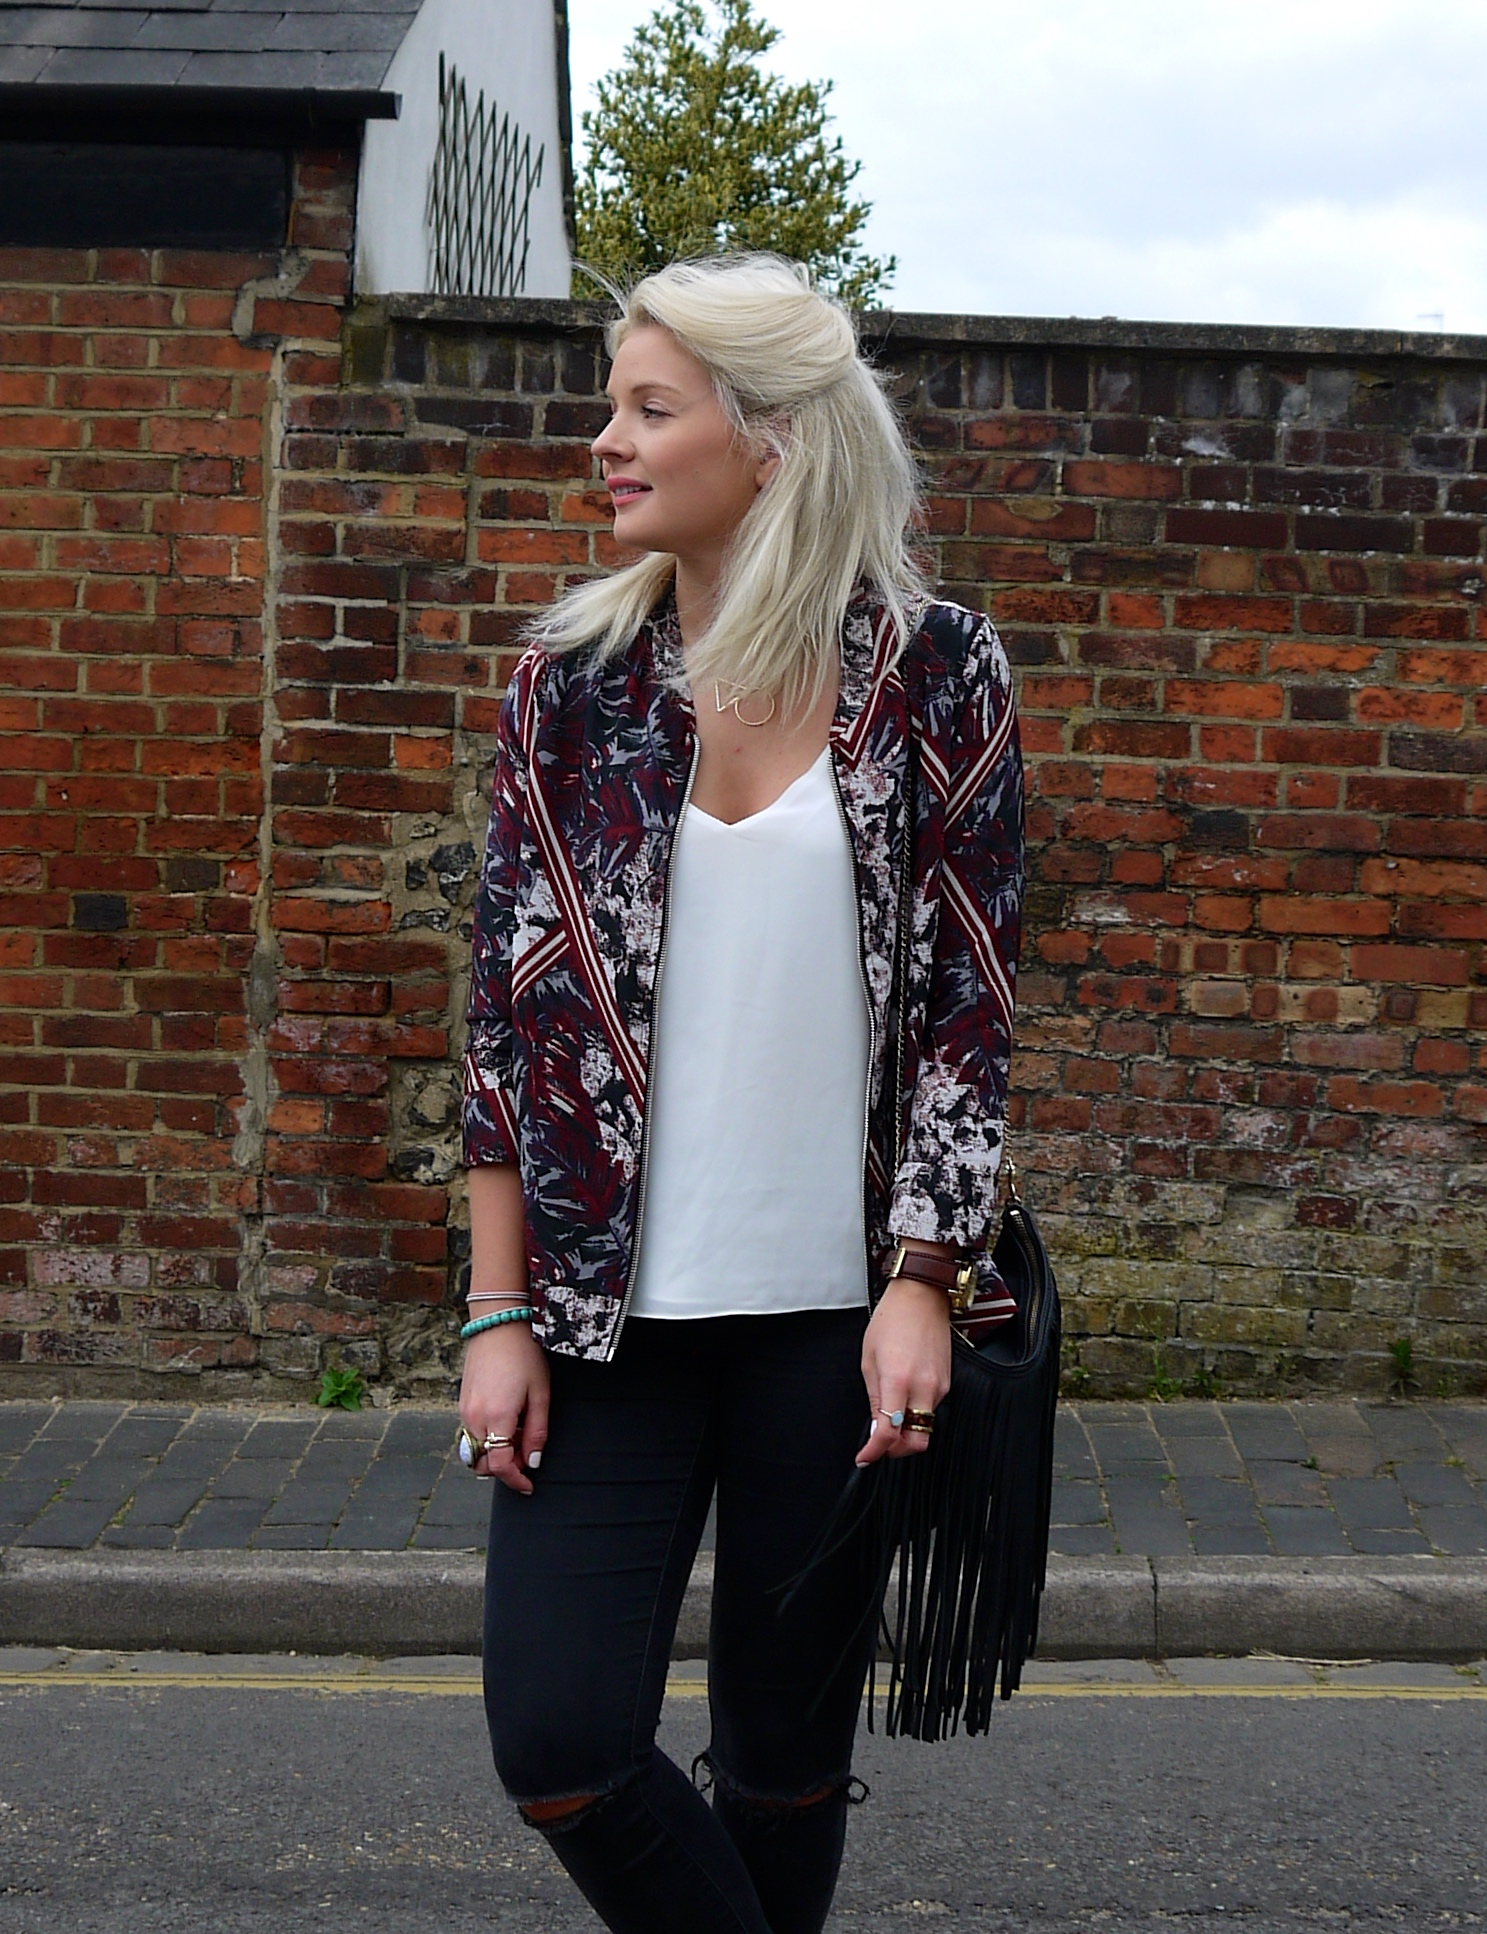 RED CREPE LEAF PRINT BOMBER JACKET, WHITE TOPSHOP CAMI, BLACK TASSLE BAG, Truffle Collection Ocean Chunky Lace Up Sandals, LAURA BYRNES